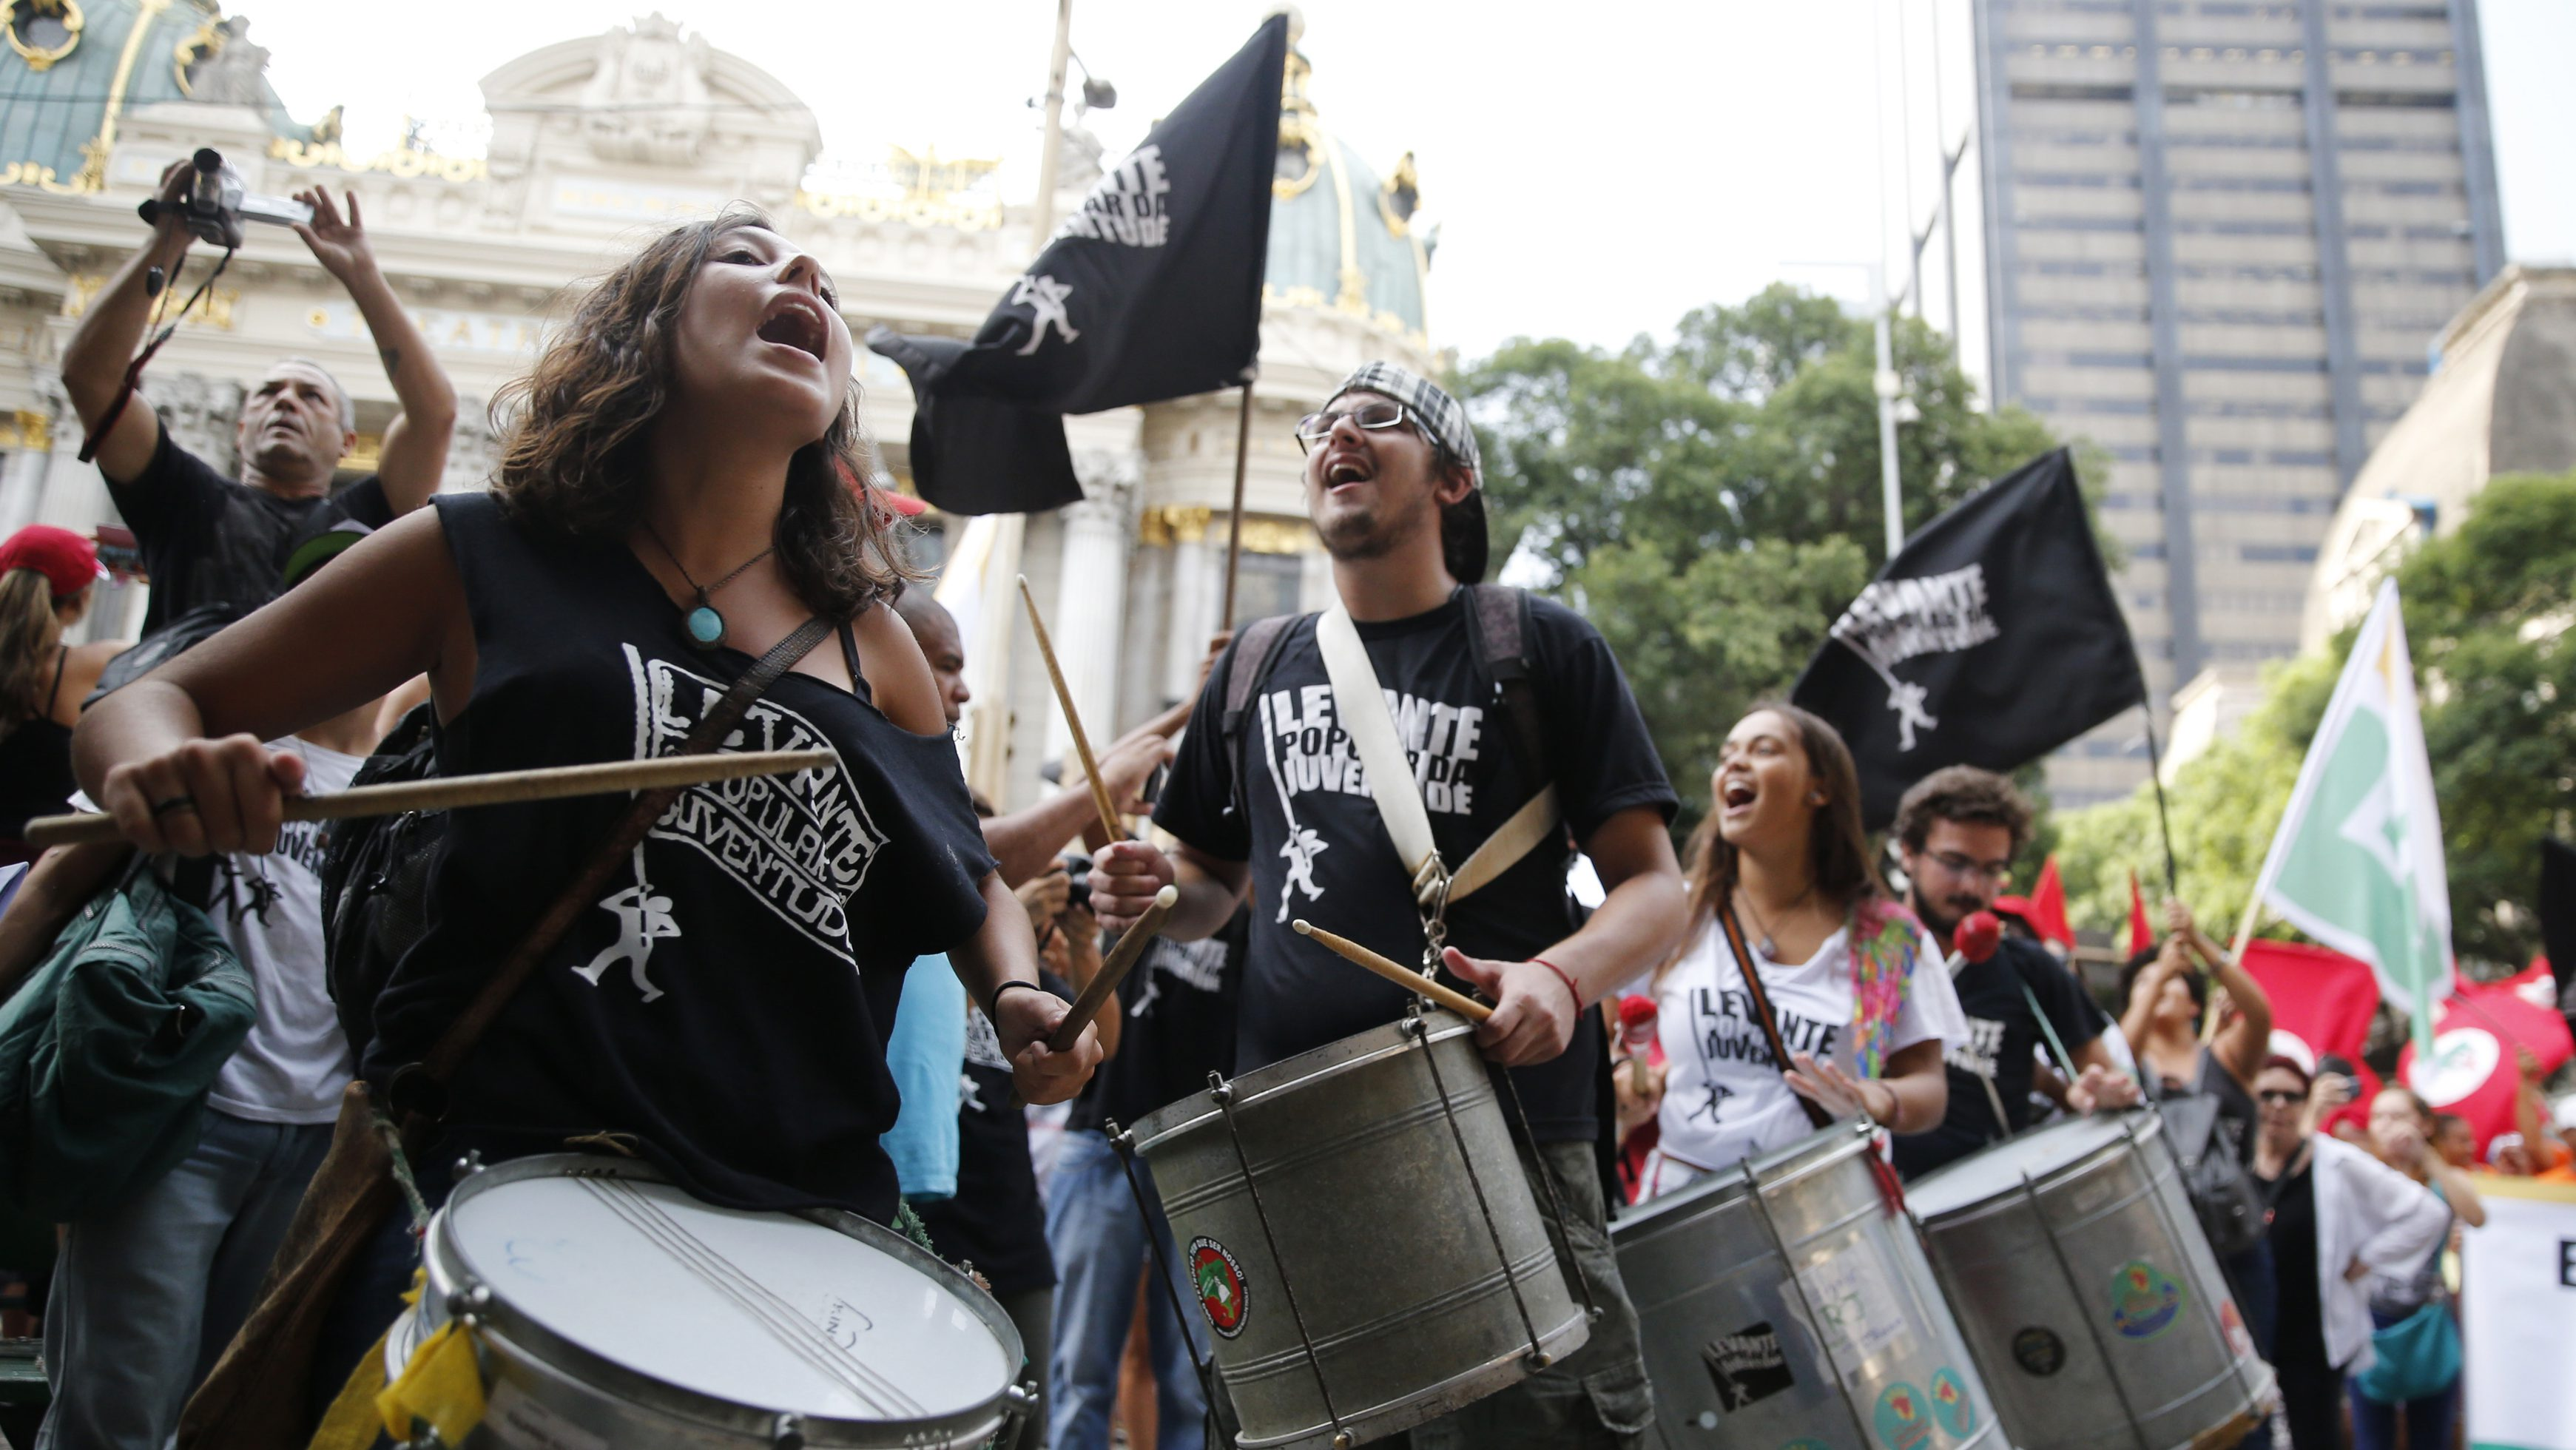 Students take part in a demonstration in defense of Brazil's President Dilma Rousseff and the state-run oil company Petrobras, in Rio de Janeiro